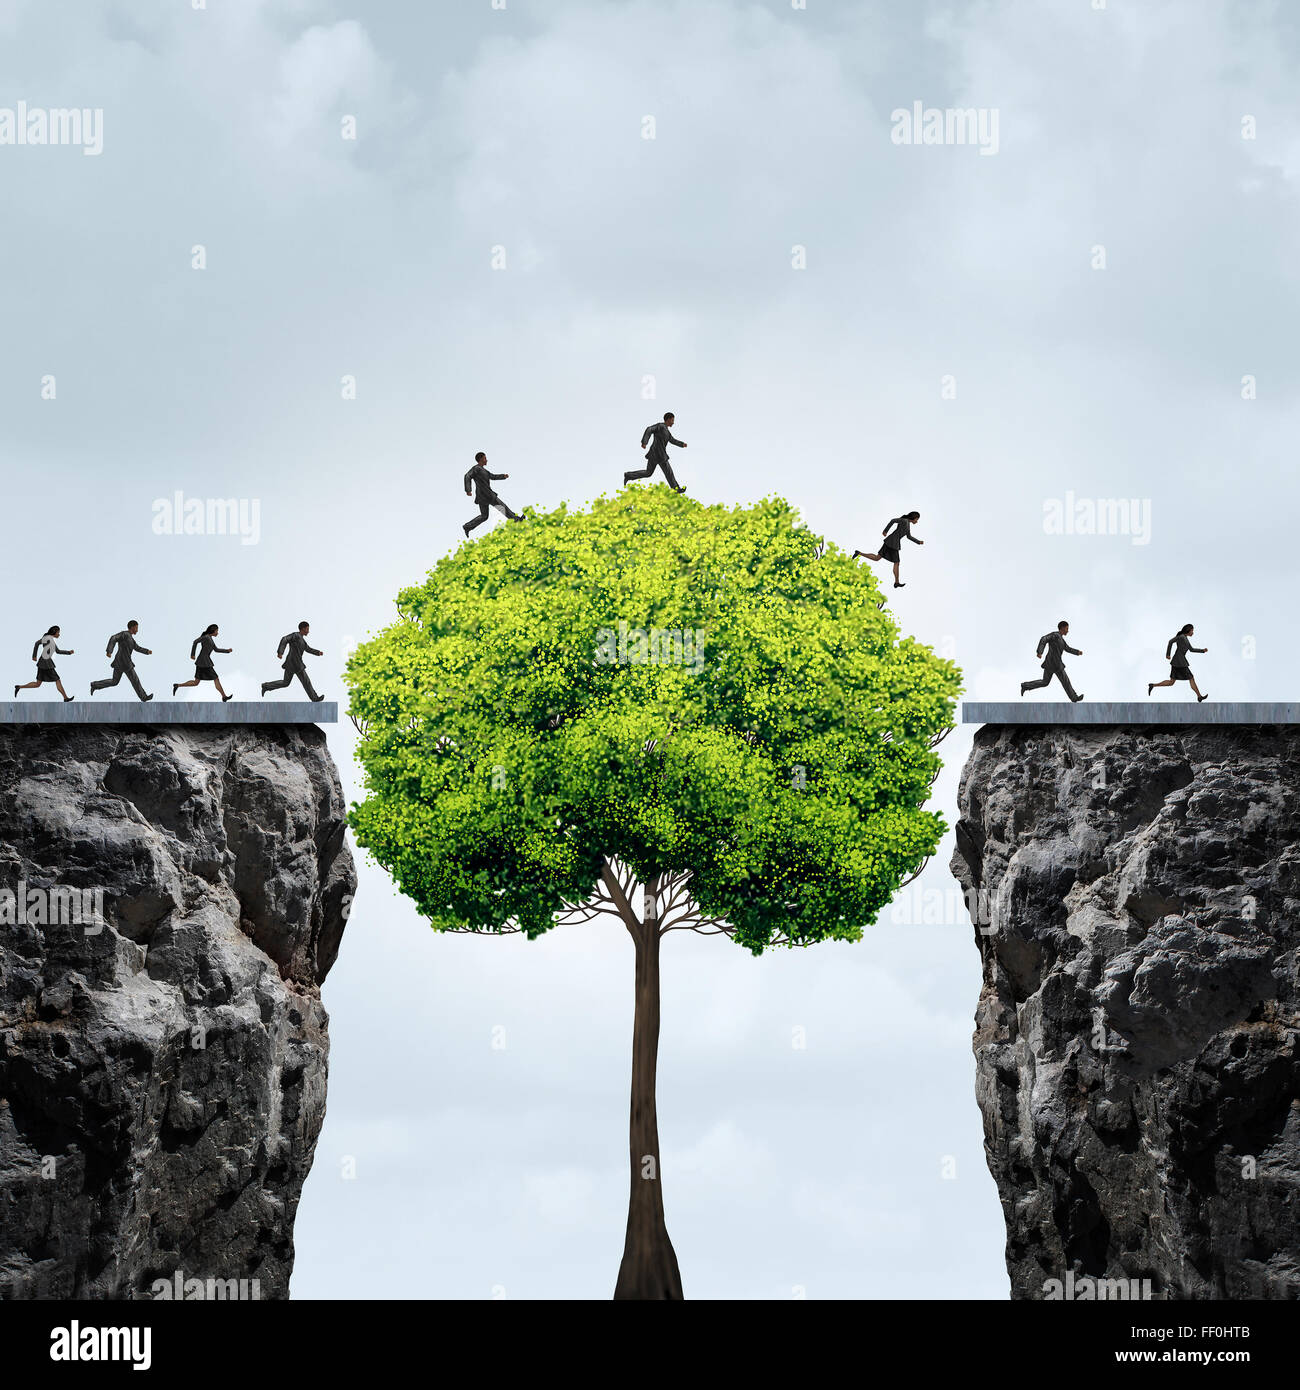 Business growth opportunity concept as a group of business people taking advantage of a tall tree grown in time - Stock Image